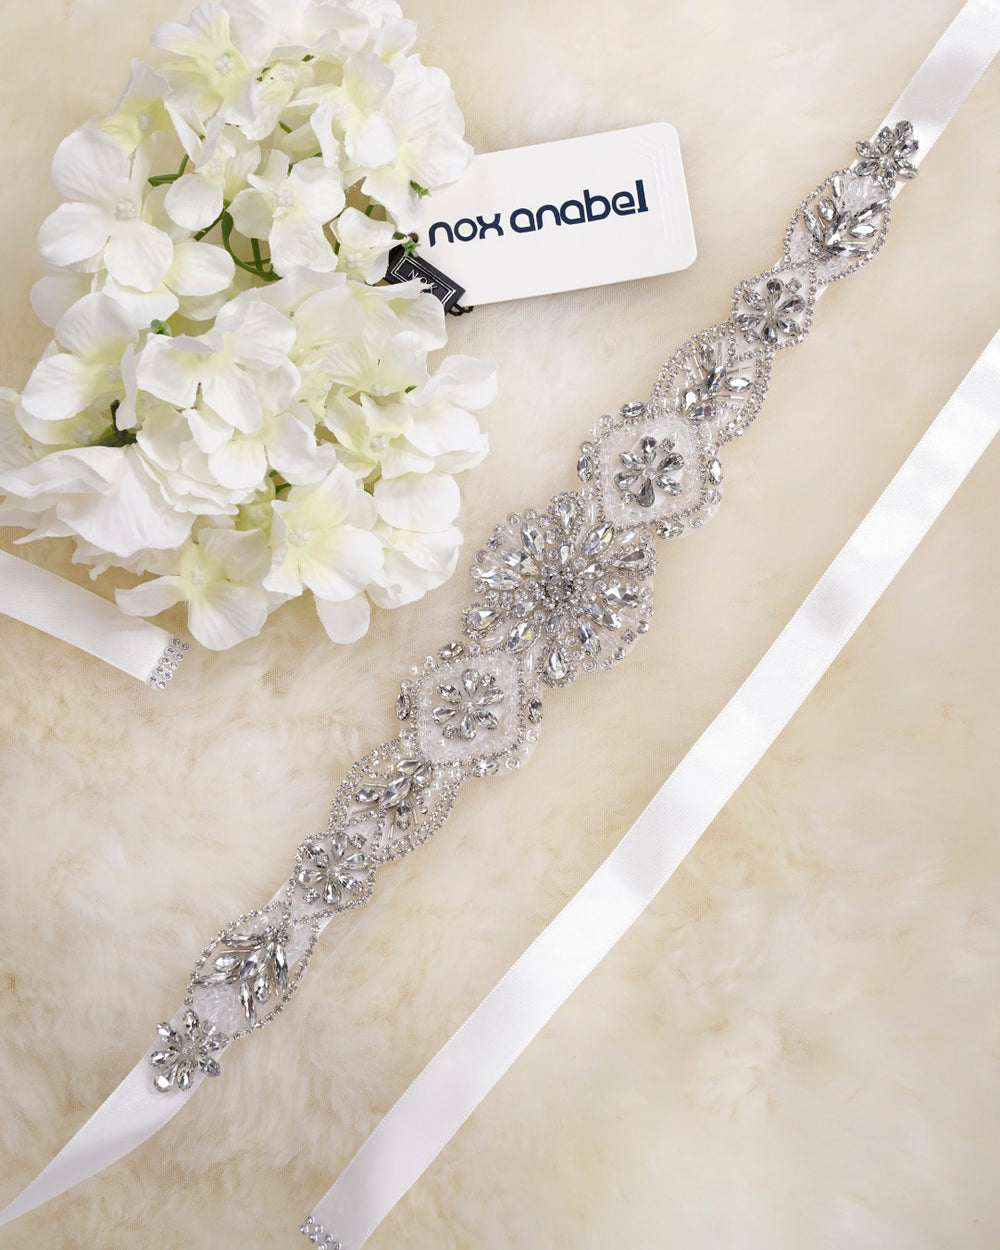 CLASSICAL RHINESTONE & CRYSTALS ACCENTED BRIDLE BELT WEDDING SASH